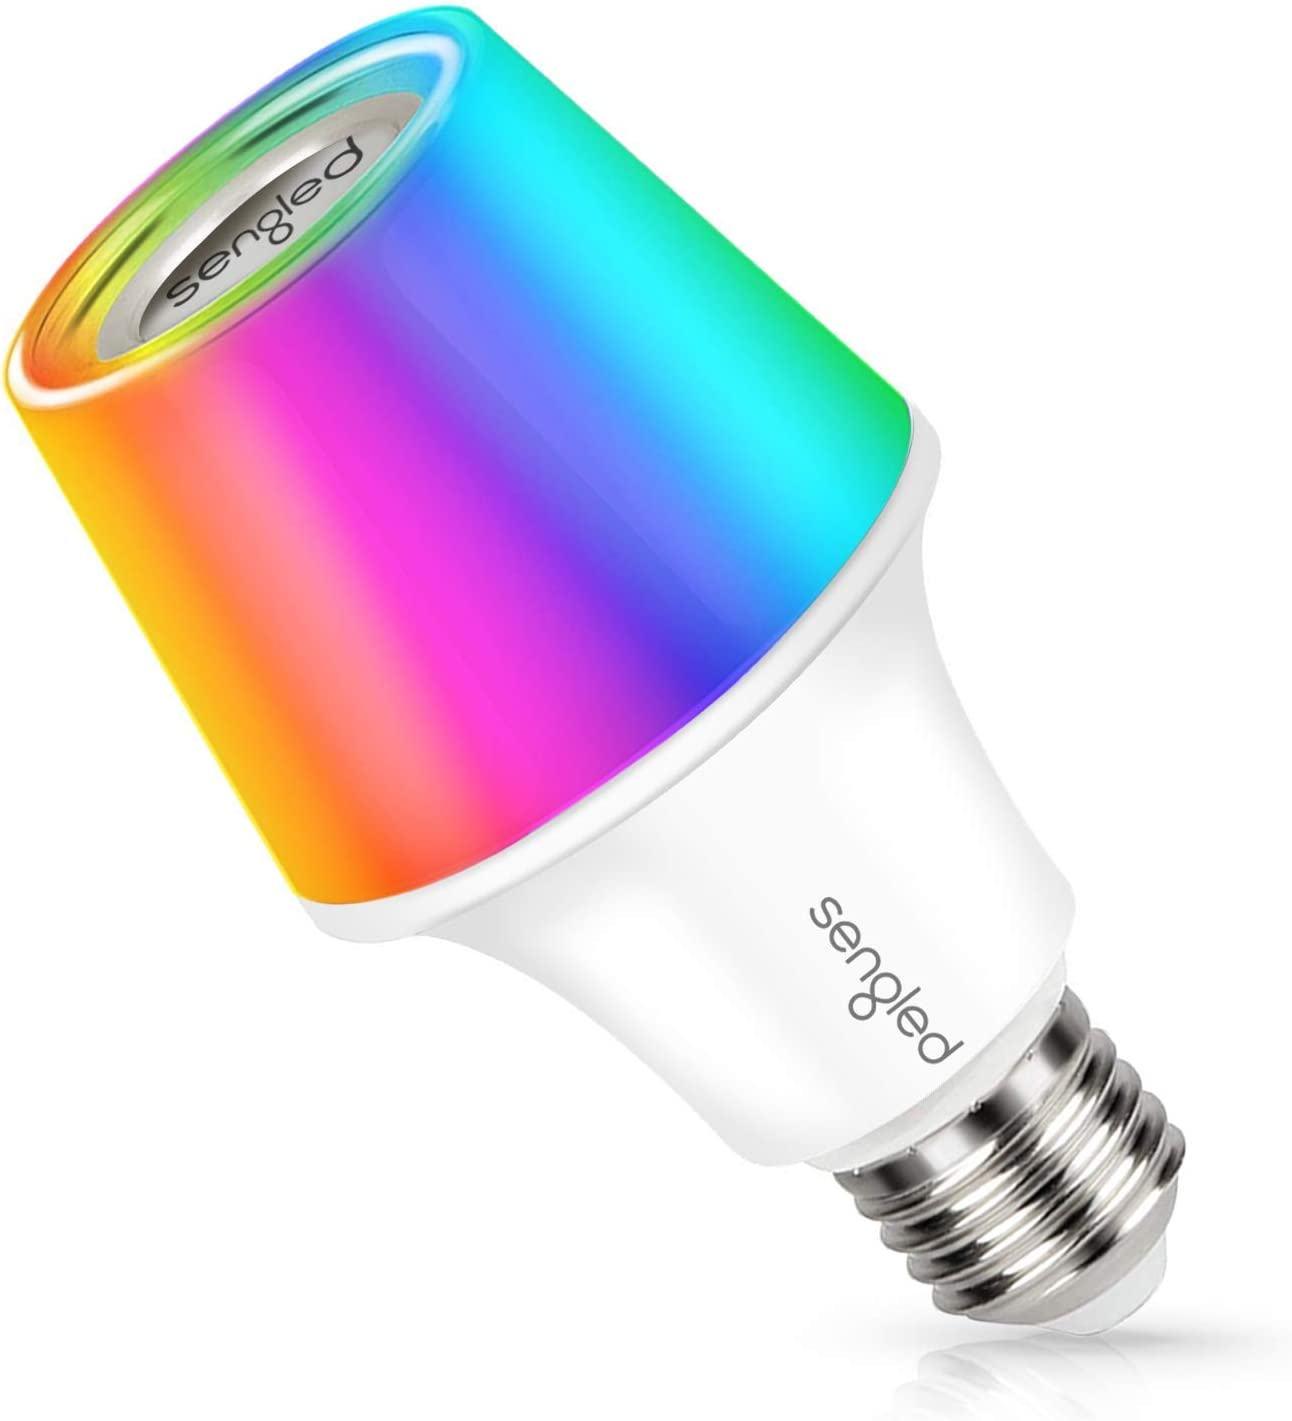 Sengled Solo RGBW Bluetooth Light Bulb Speaker Multi Color